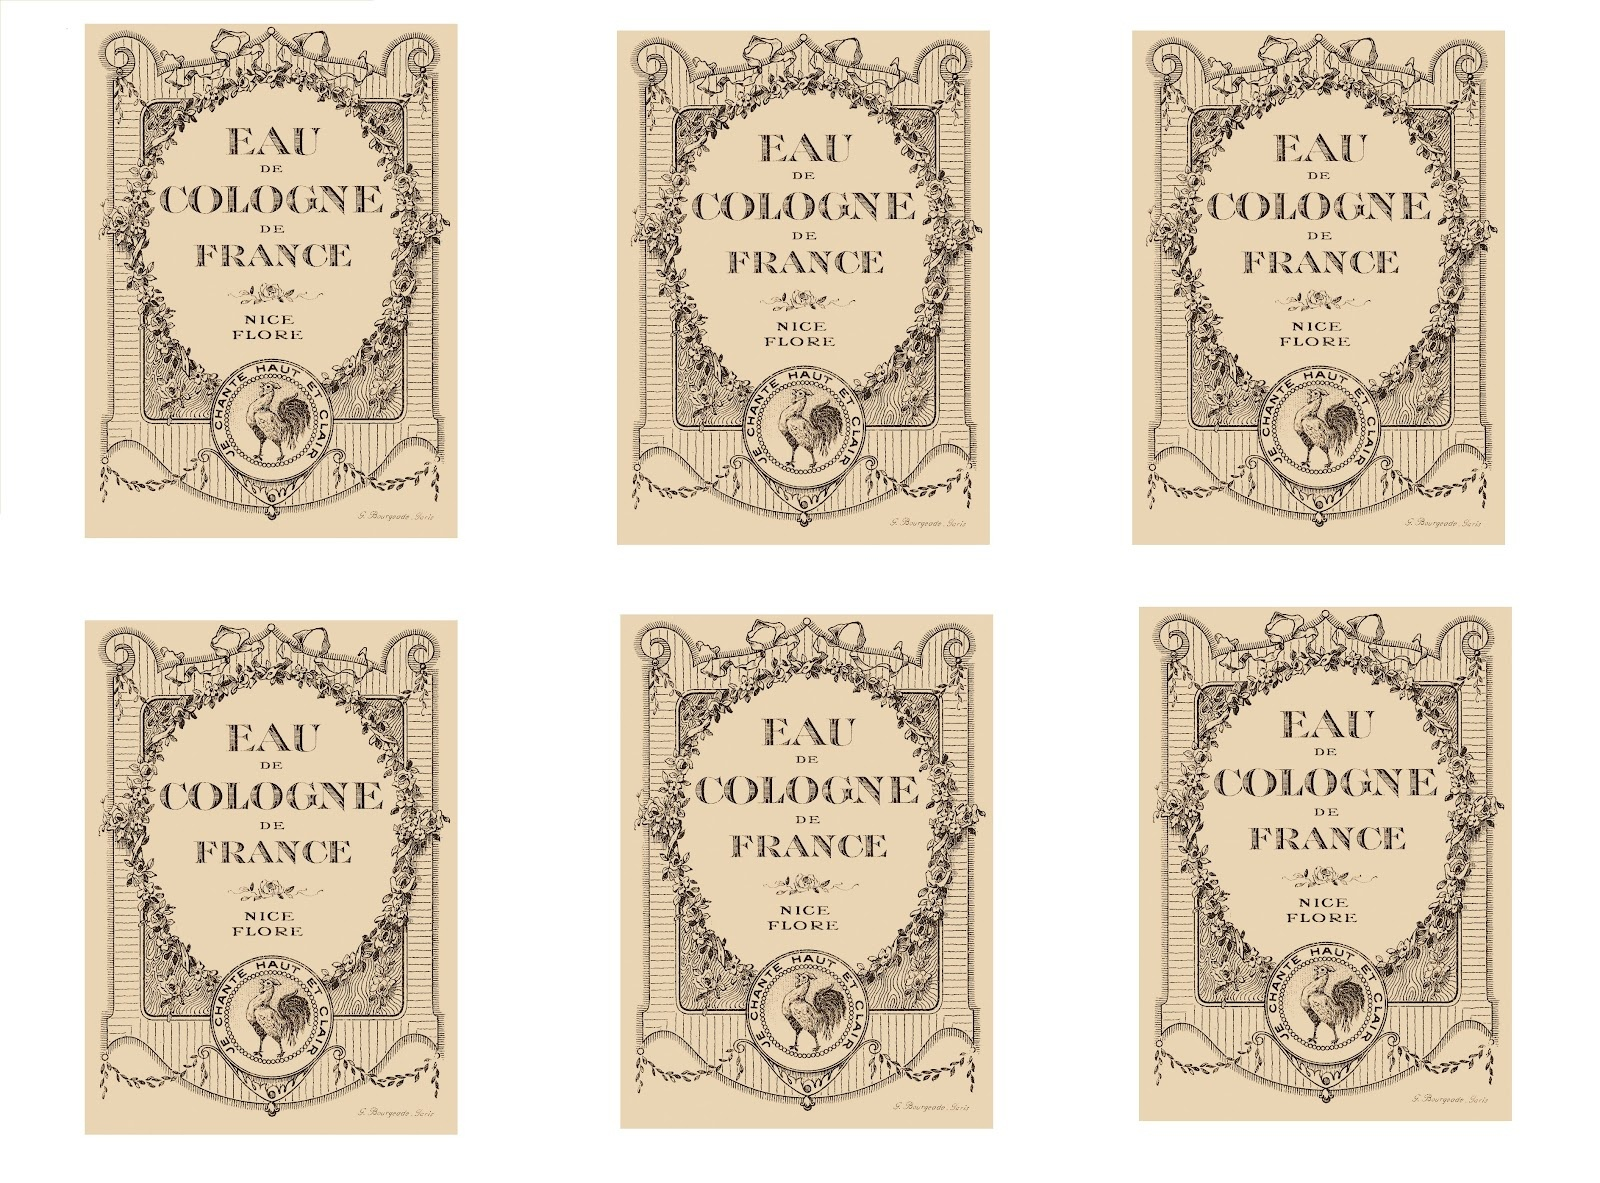 17 Vintage Apothecary Labels Free Template Images - Vintage - Free Printable Apothecary Jar Labels